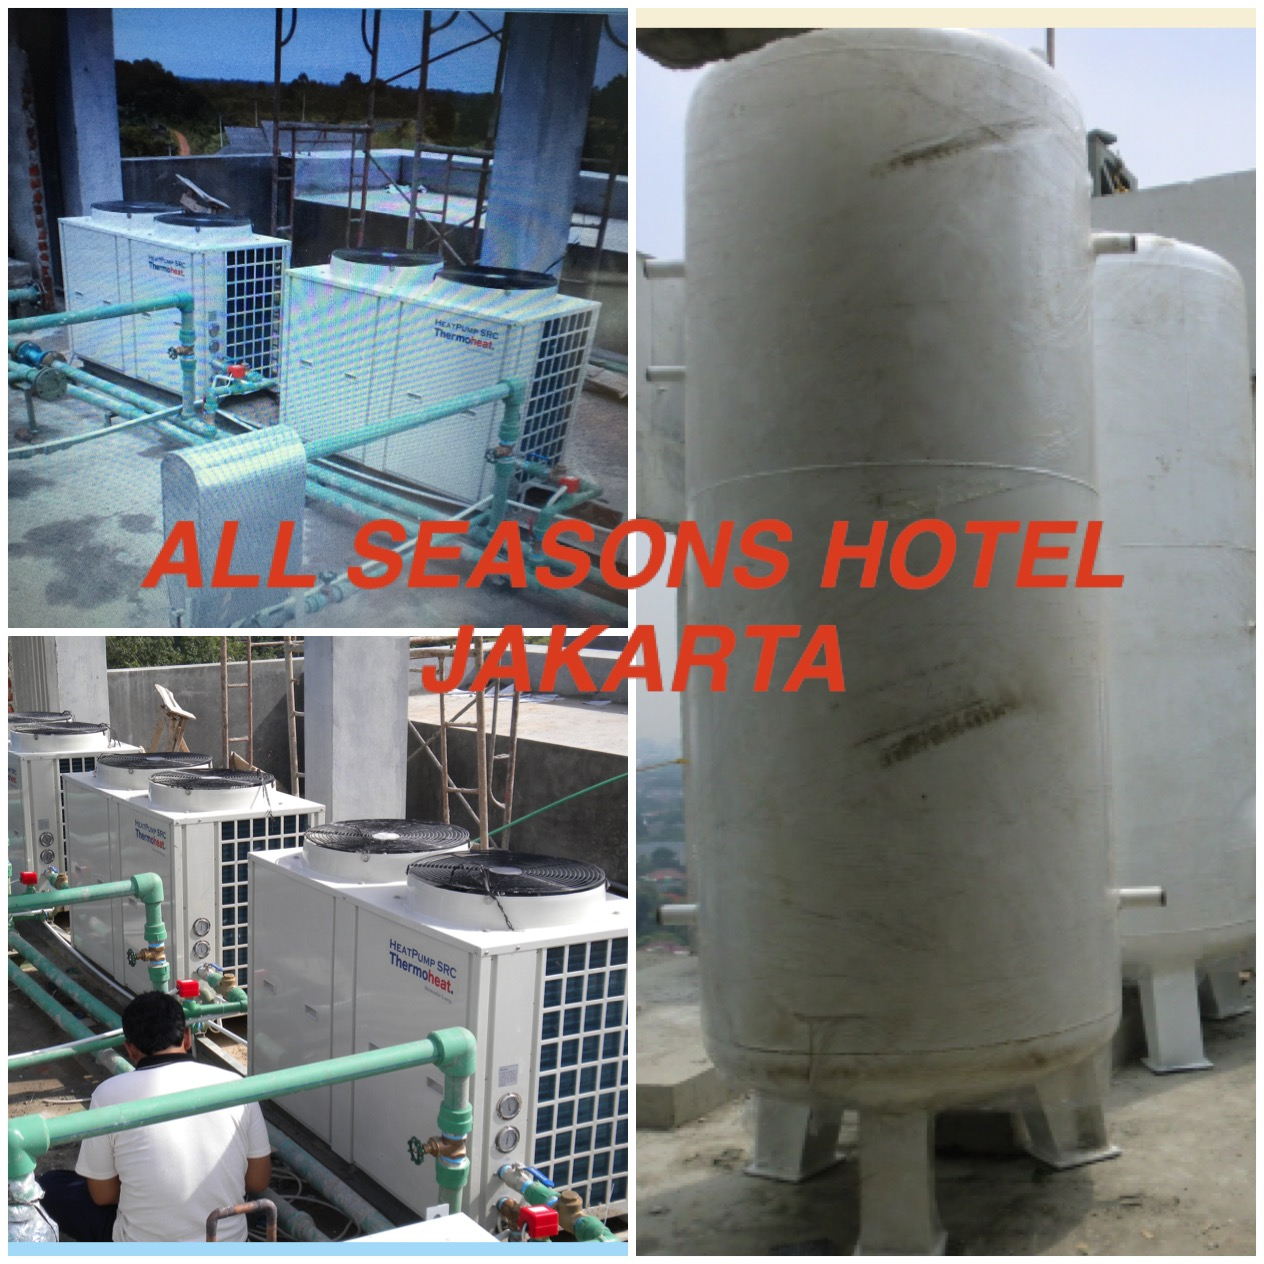 Gallery. Commercial Heating u0026 Hot Water ...  sc 1 st  Hpsirac & Commercial Heating u0026 Hot Water - Hpsirac